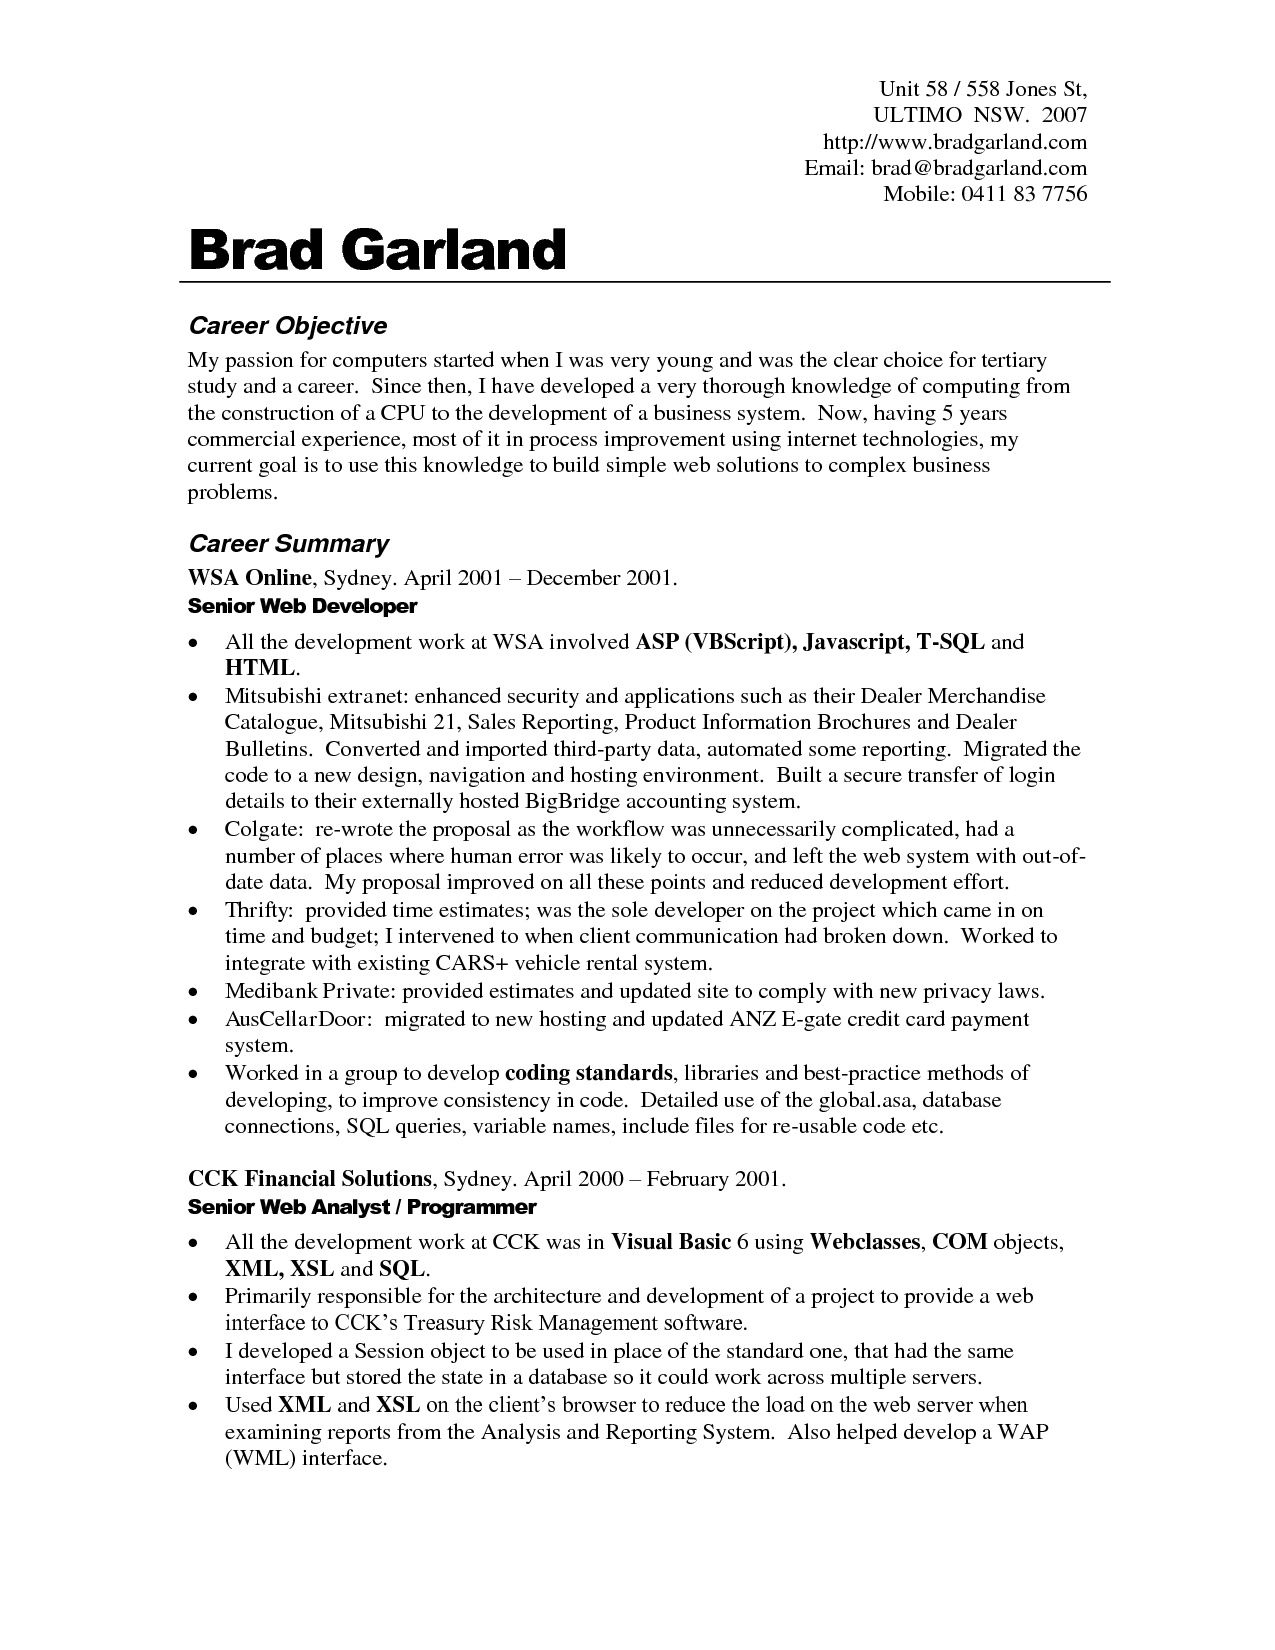 [ Sample Resume Action Verbs For Lawyers Formatting Back Post Attorney  Samples Entry Level Lawyer ] - Best Free Home Design Idea & Inspiration